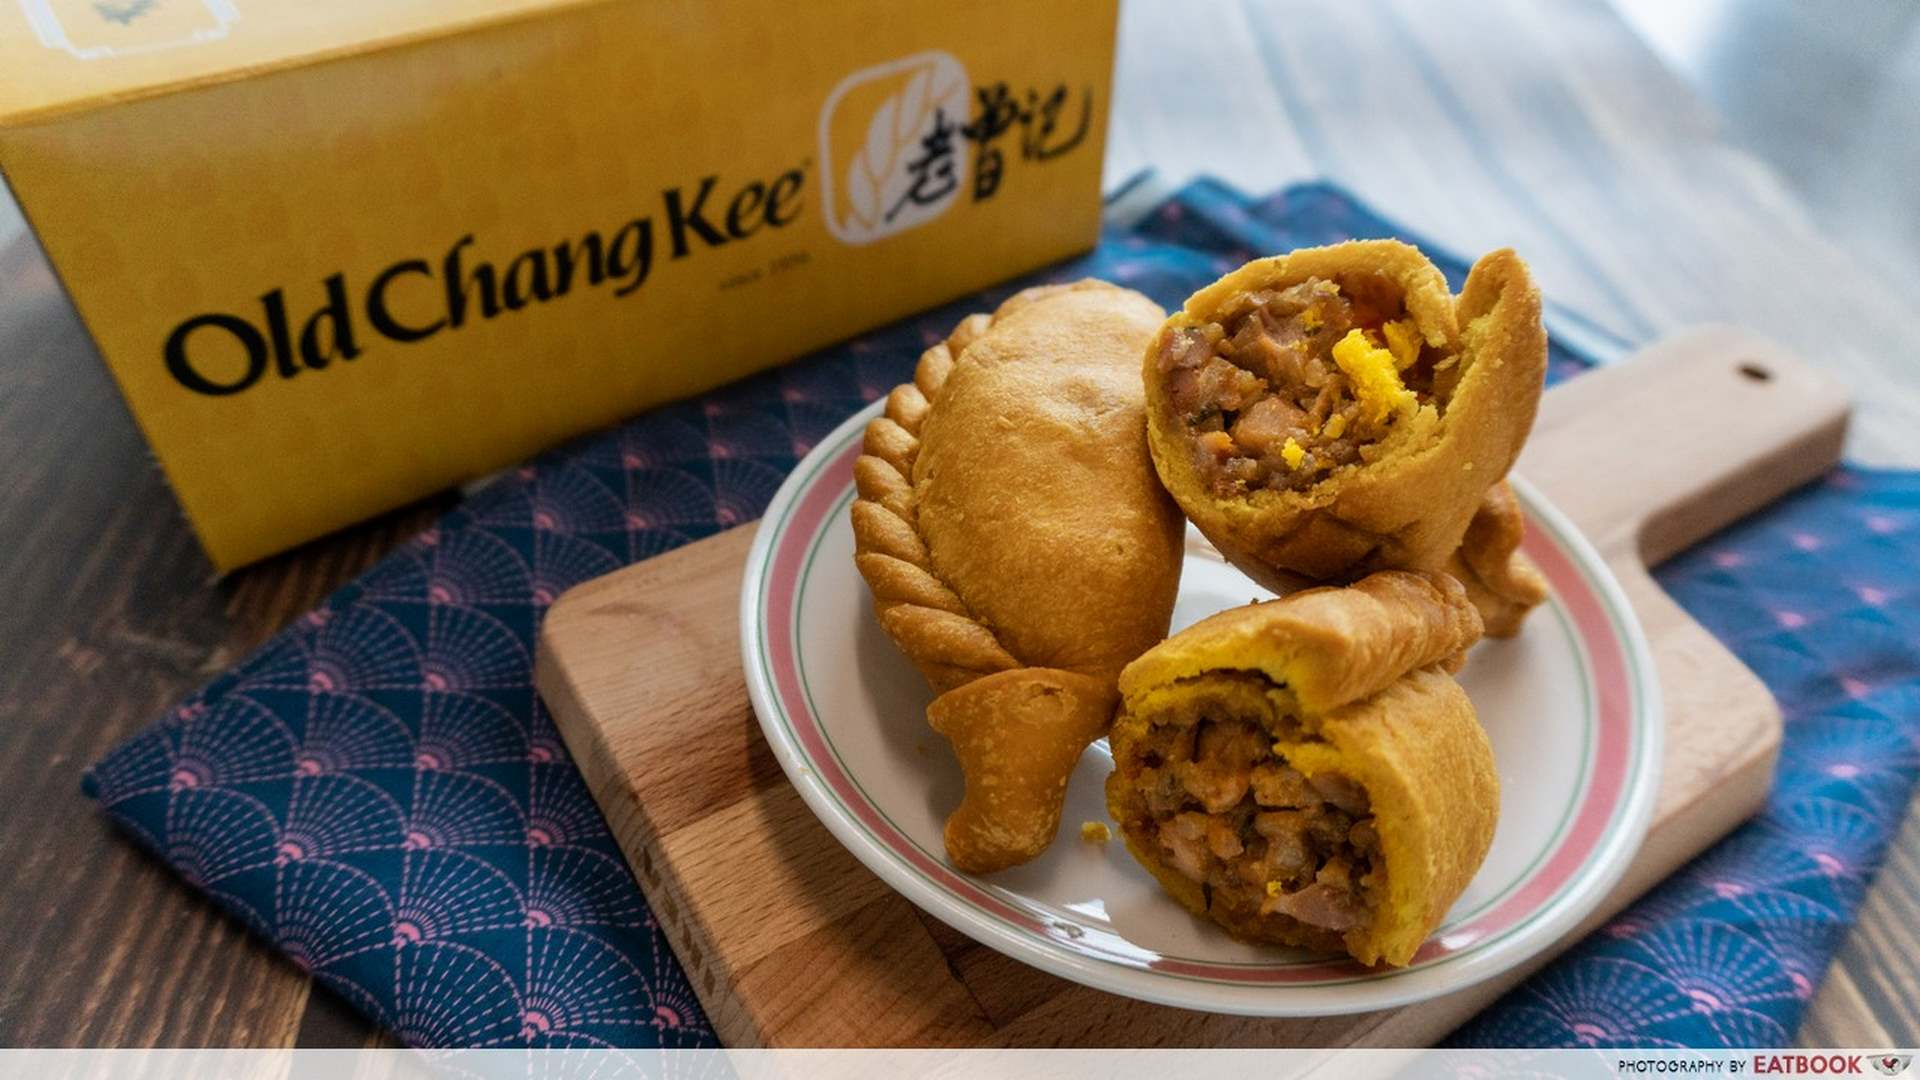 Old Chang Kee - chicken rice puff